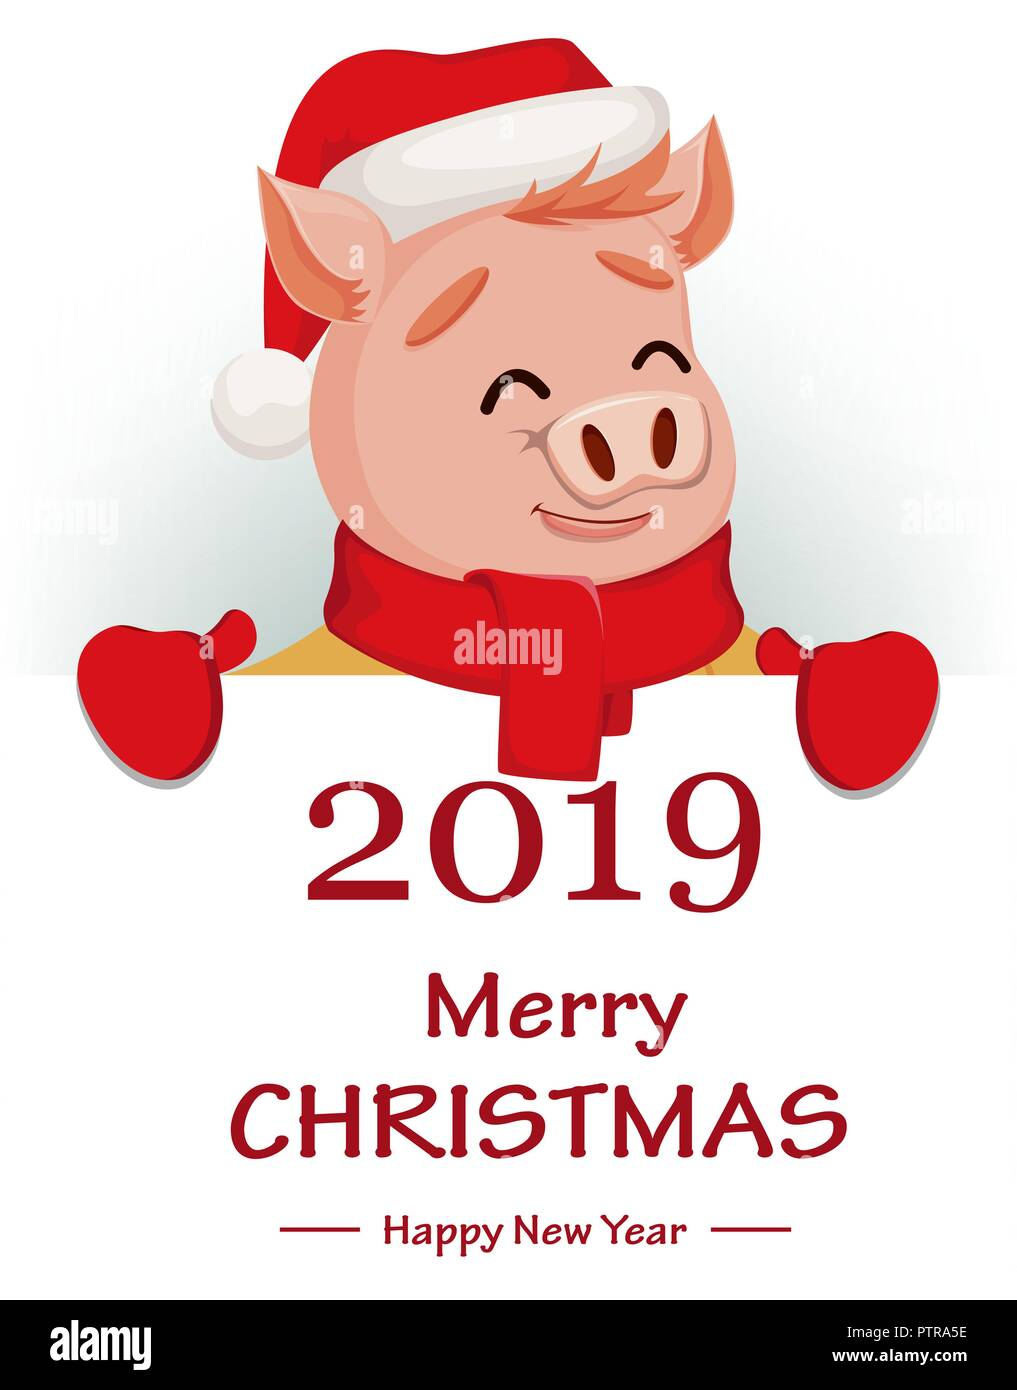 merry christmas cute pig wearing santa claus hat and merry christmas and happy new year clipart black and white merry christmas and happy new year clip art banner